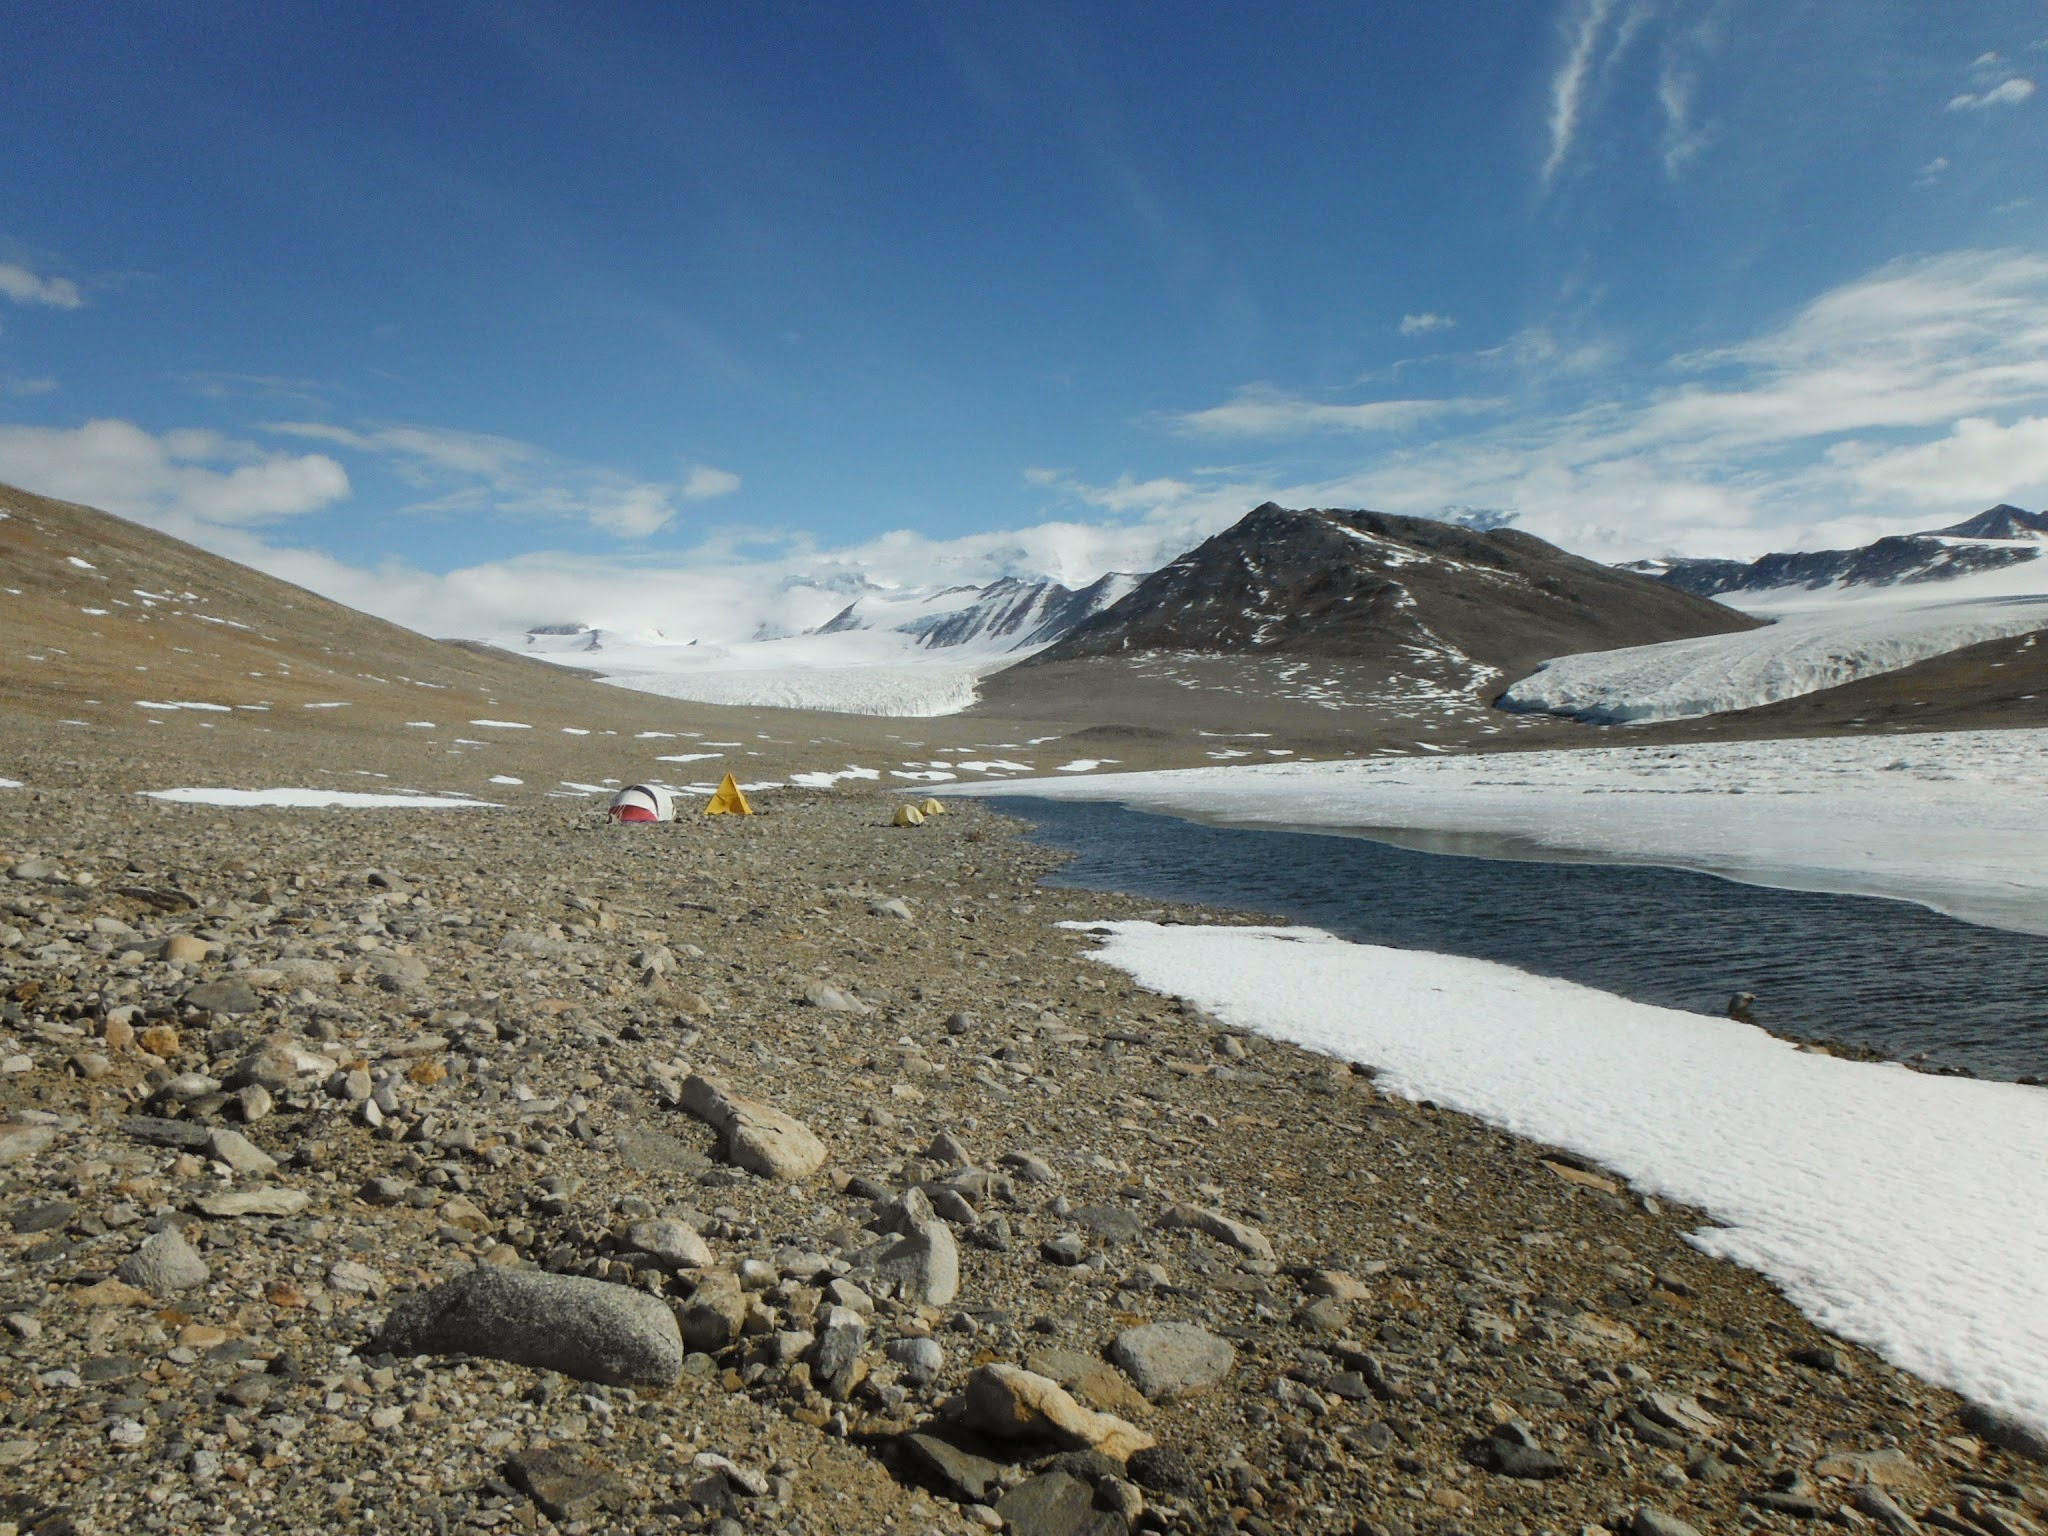 Temporary camp set up at Lake Miers for the 12-13 season, December 2012 (photo by A. Chiuchiolo)